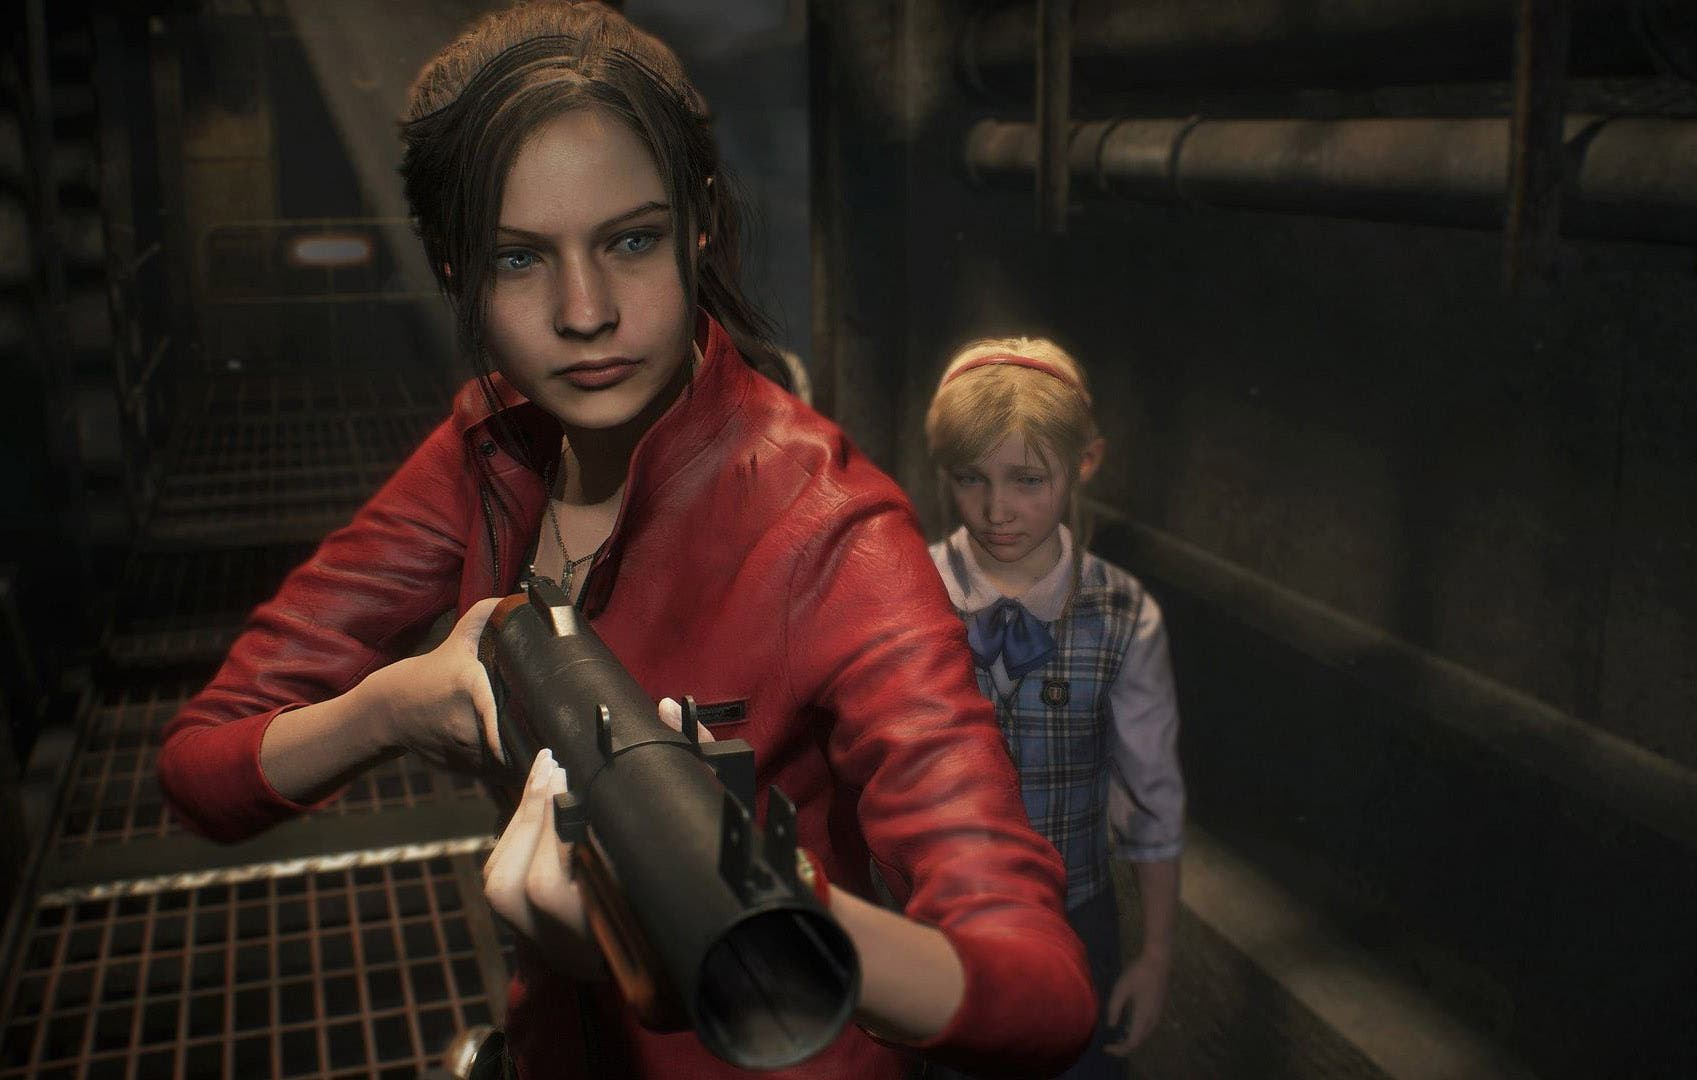 Claire Redfield de Resident Evil sería la nueva superviviente de Dead by Daylight 4